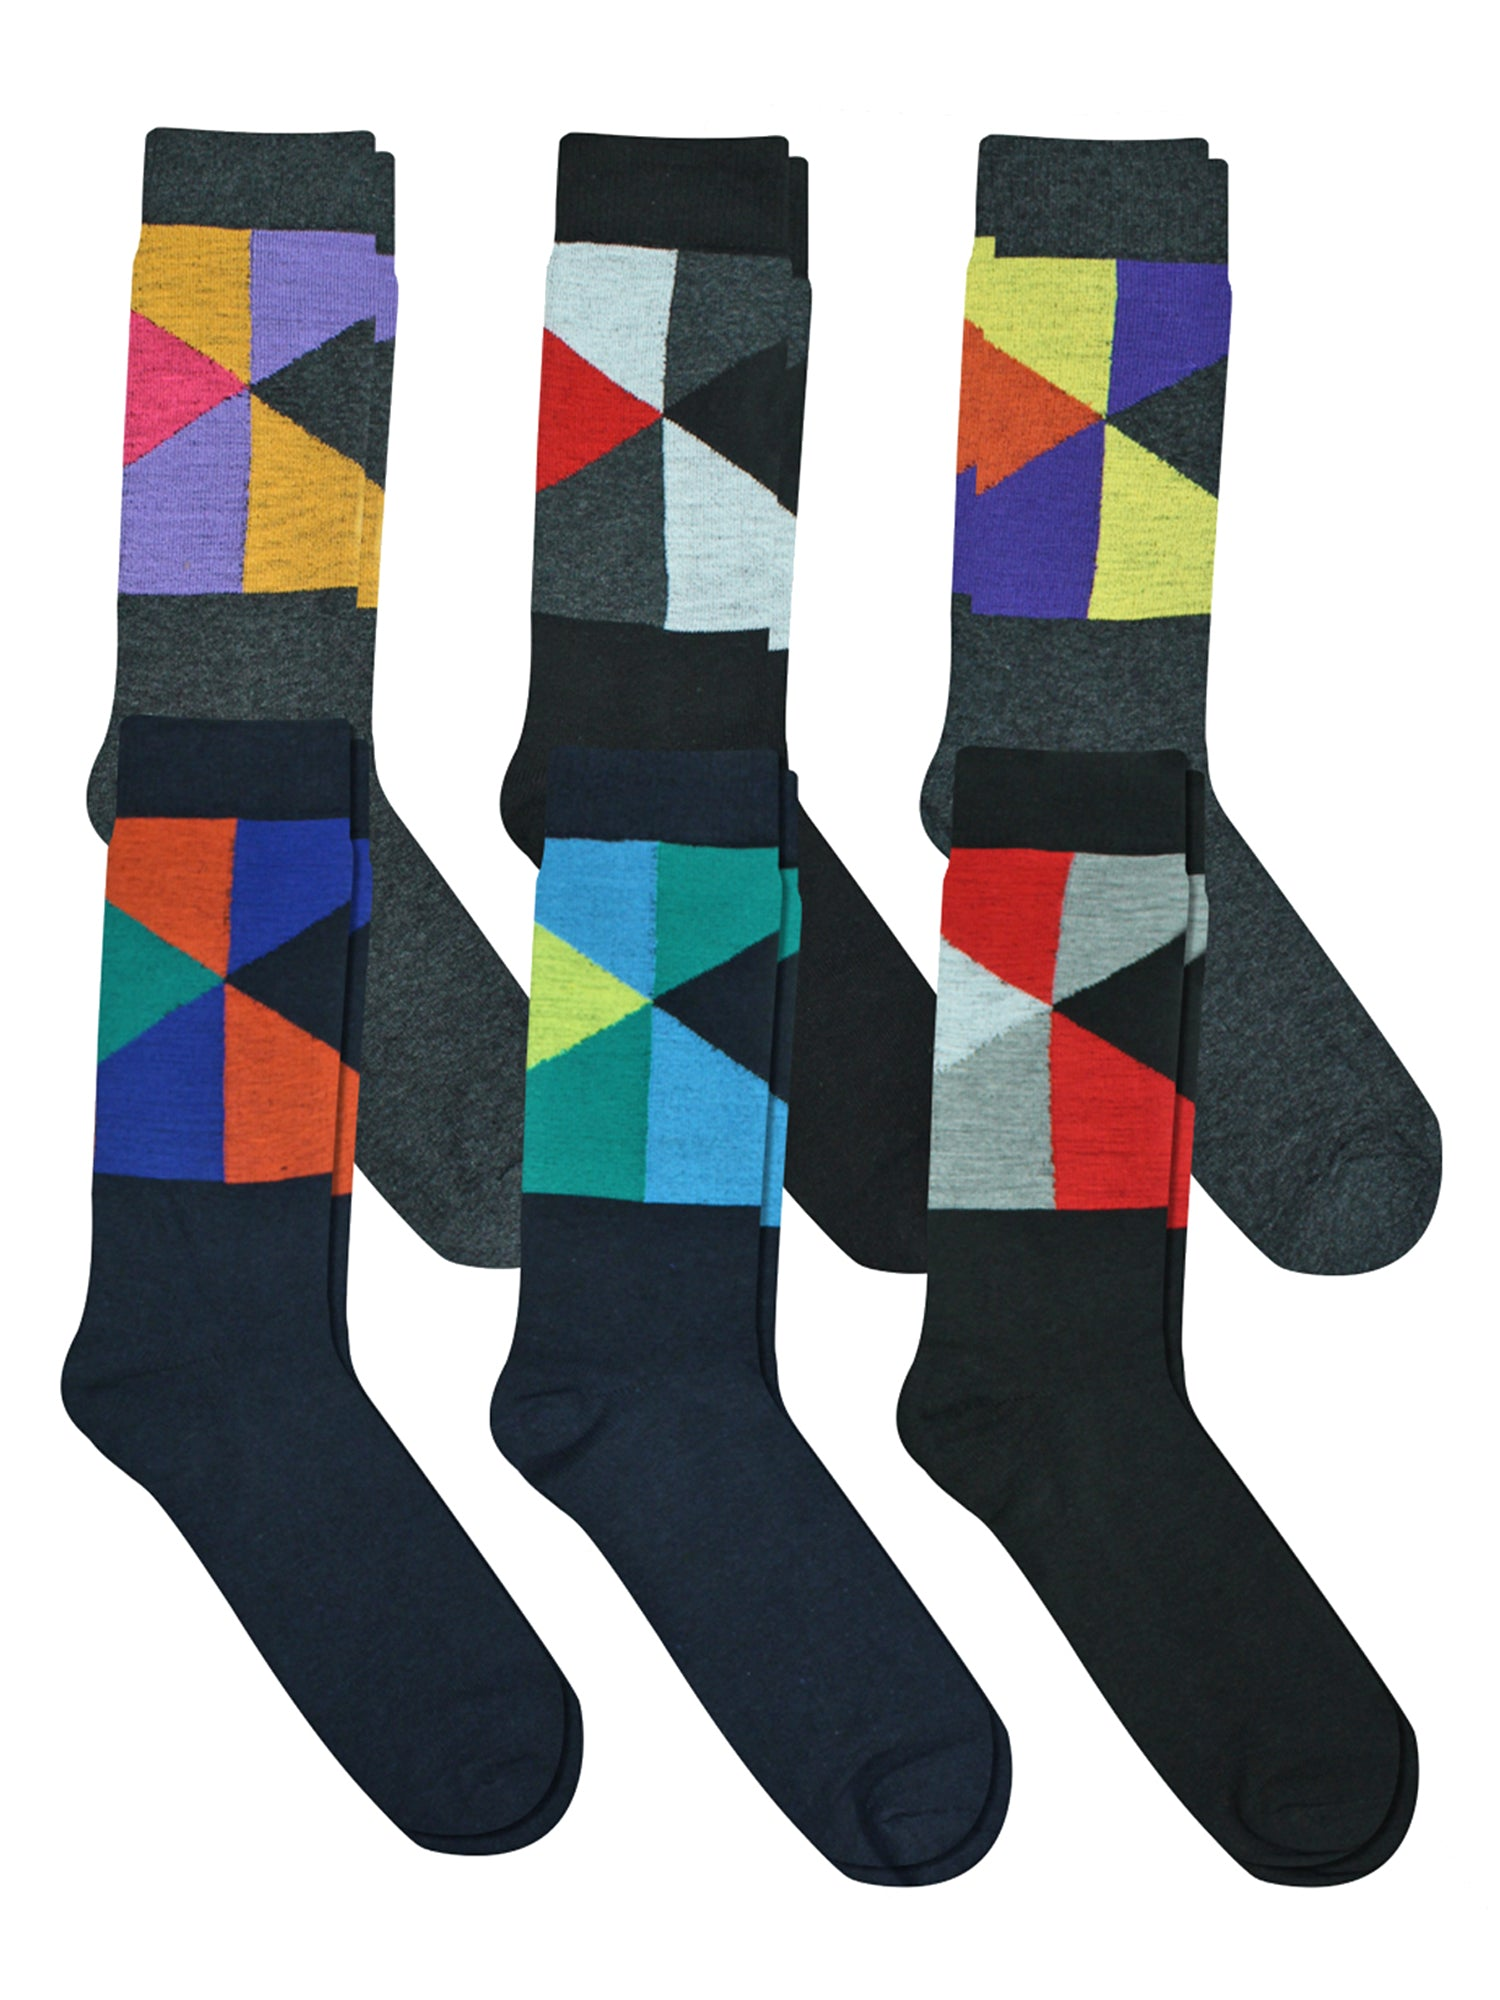 6-Pack Mens Cotton Blend Geometric Dress Socks